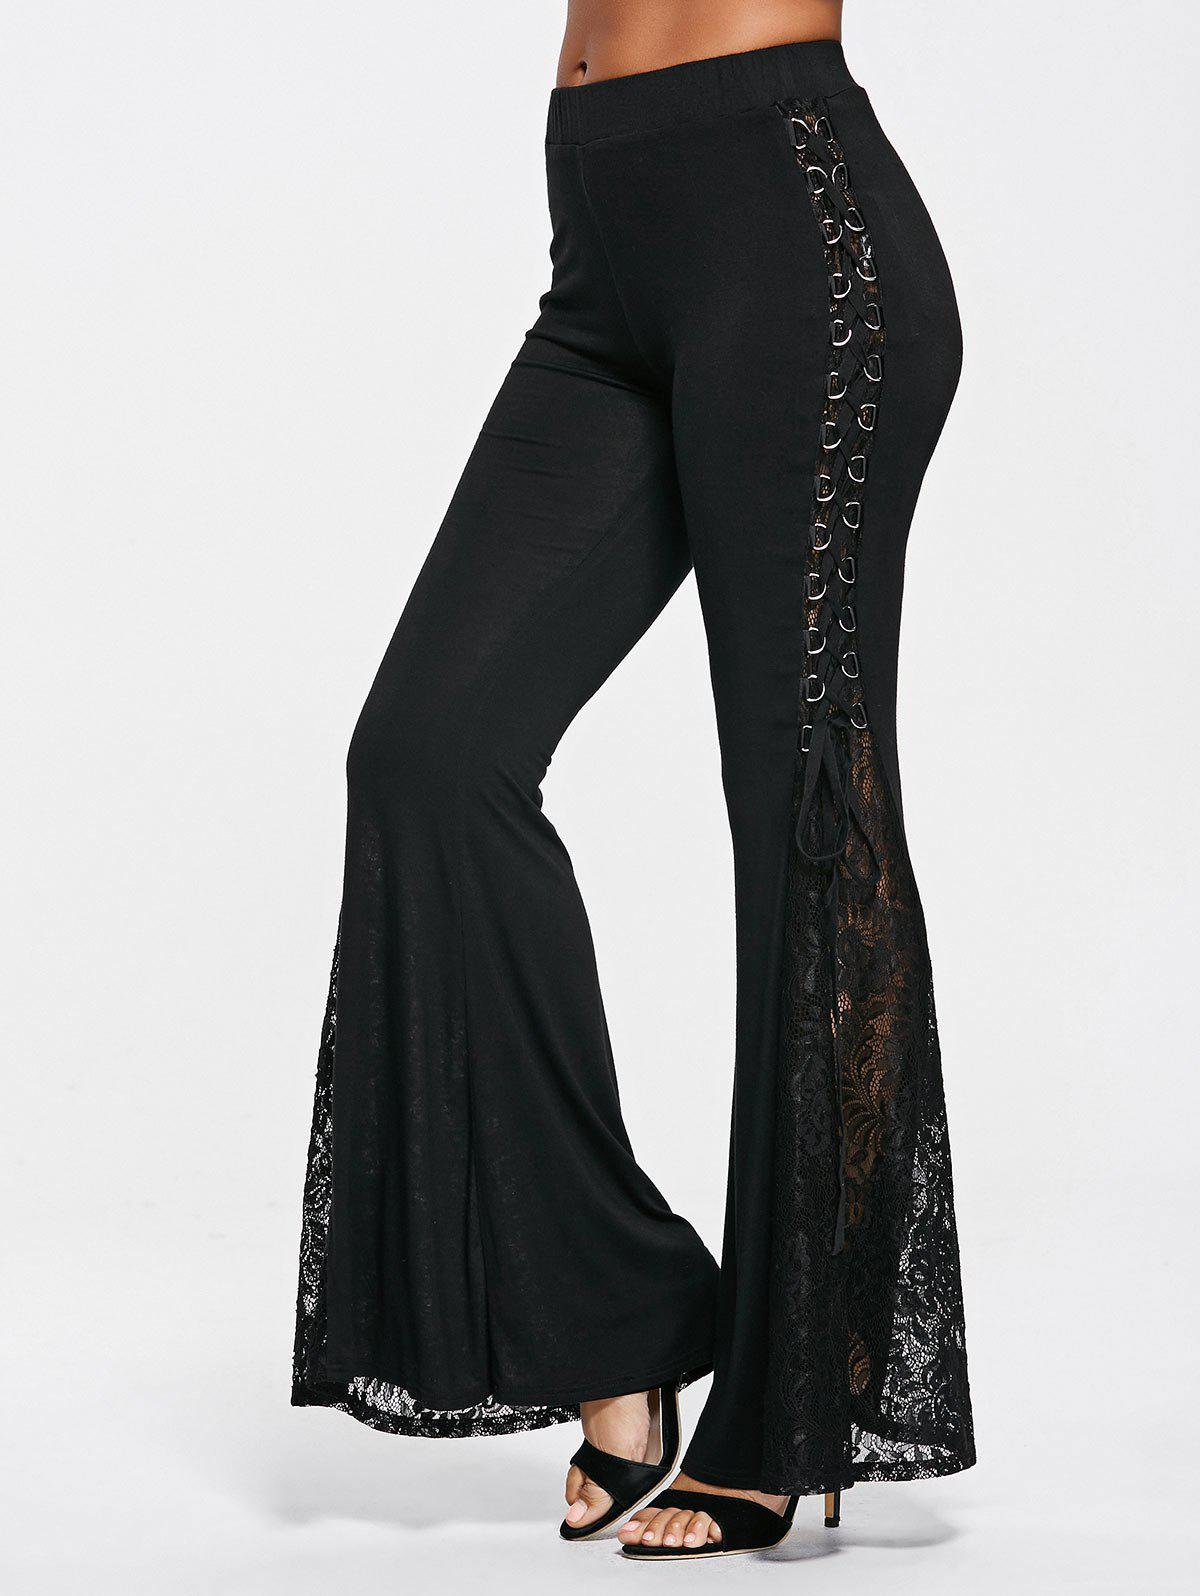 Fancy Lace Panel Flare Elastic Waist Pants